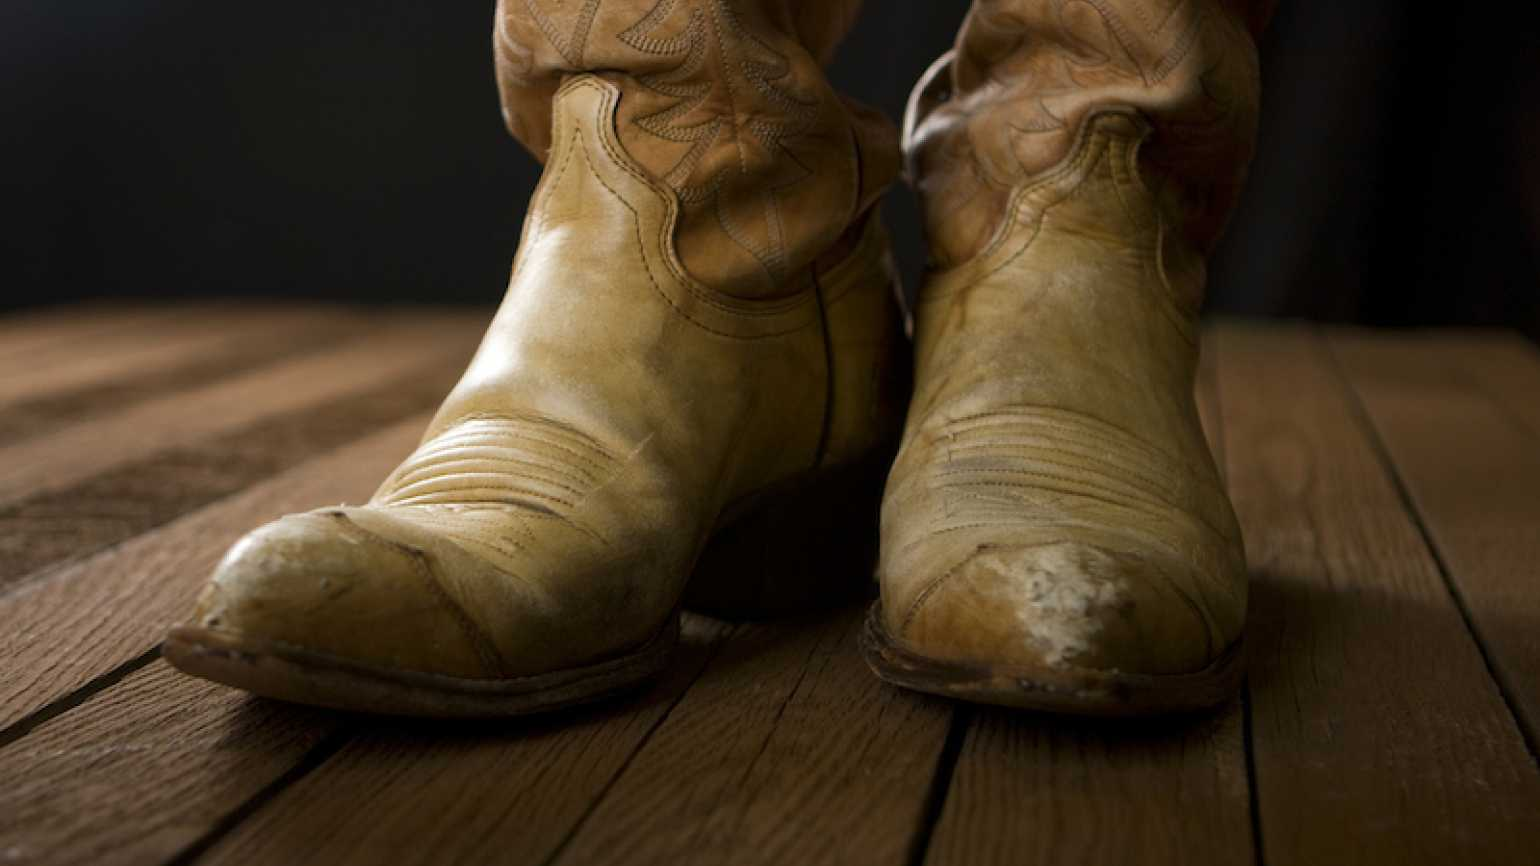 Cowboy boots. Photo by Jerry Hetrick, Thinkstock.